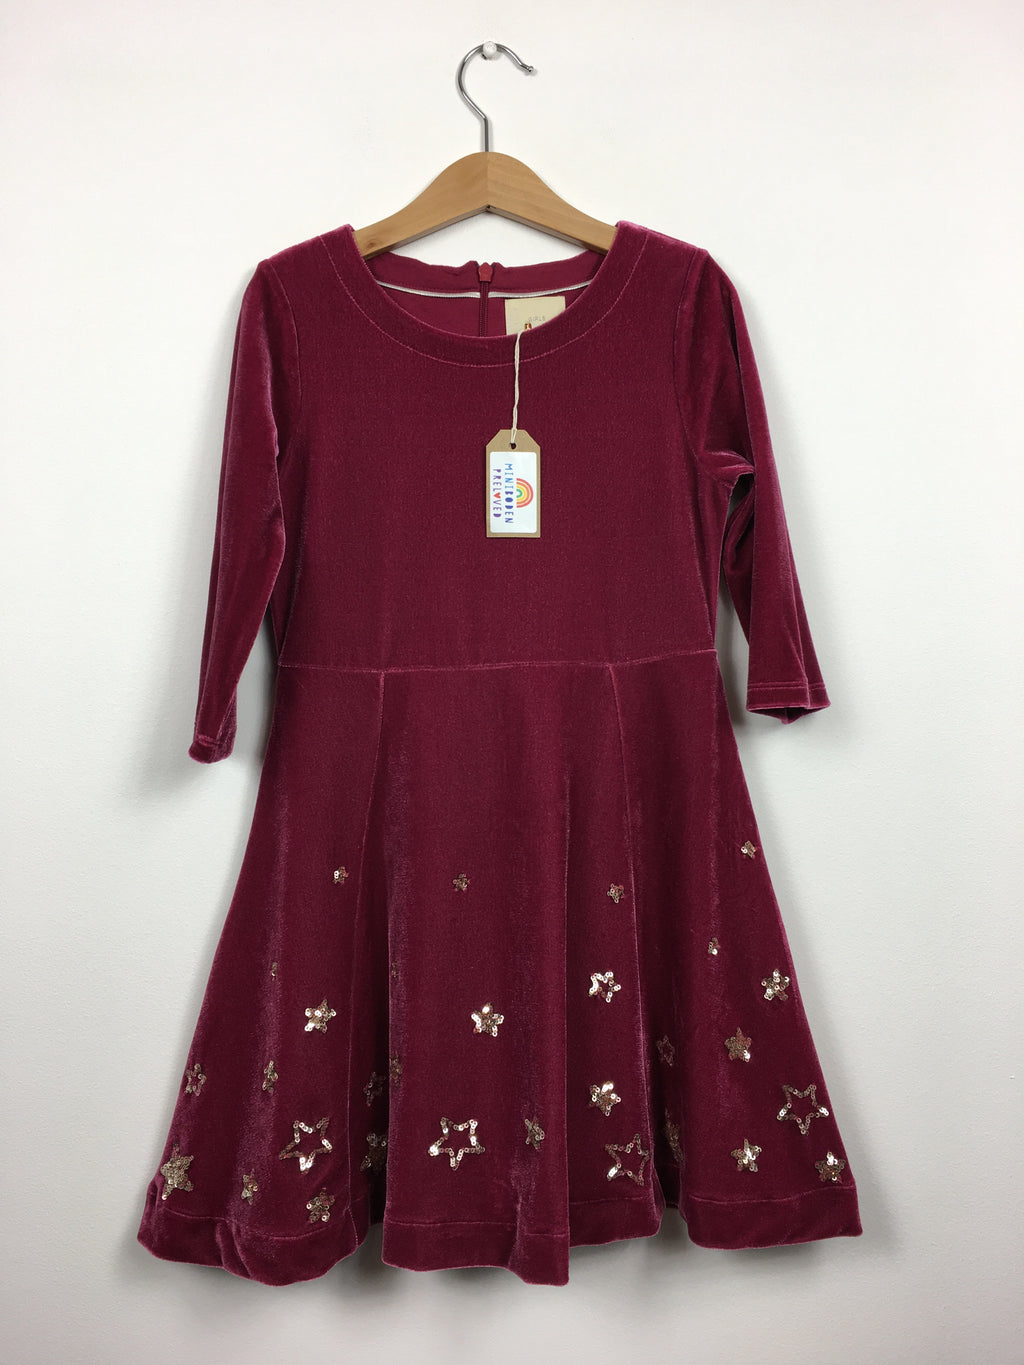 Burgundy Velvet Party Dress With Sequin Stars (6-7 Years)